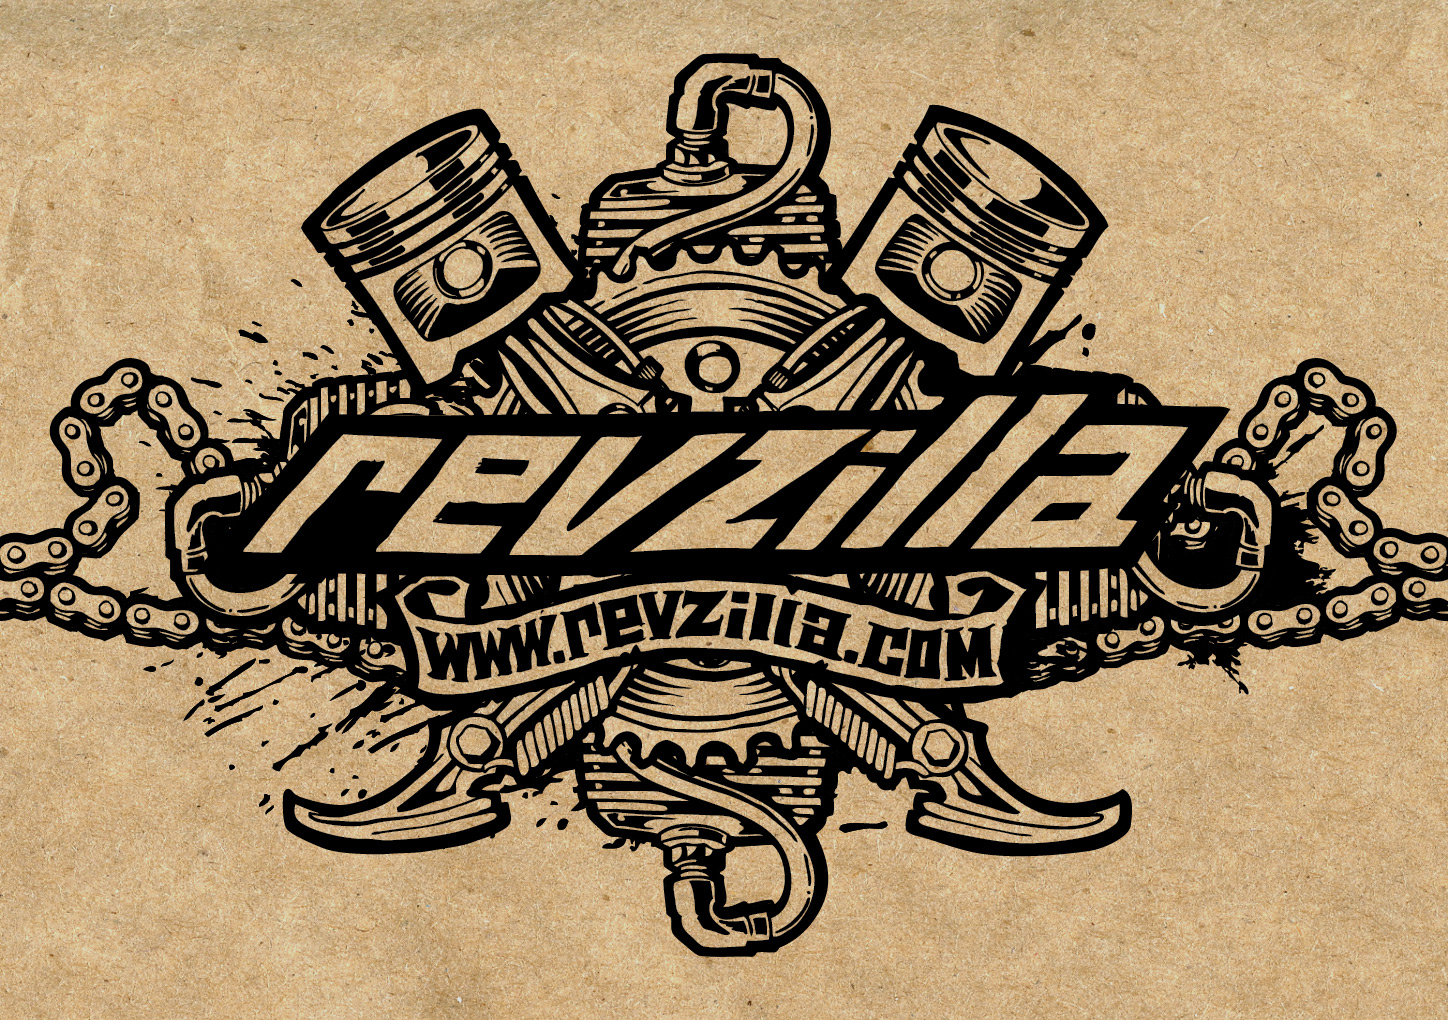 One color Revzilla logo on cardboard background